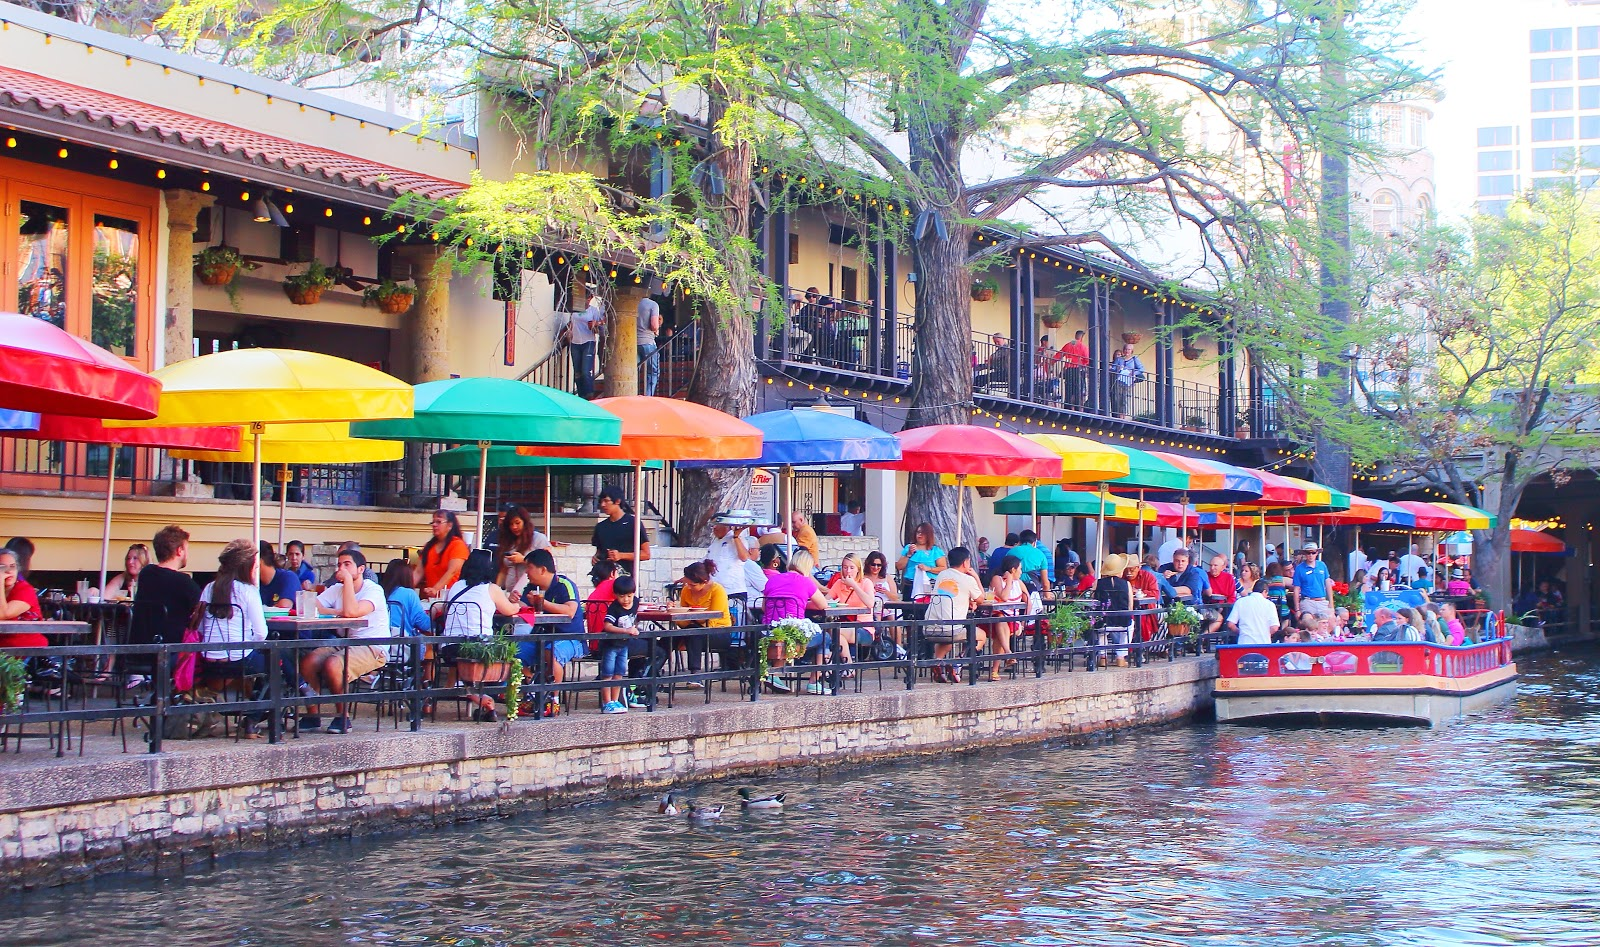 Day Trip to San Antonio: Things To Do in Texas